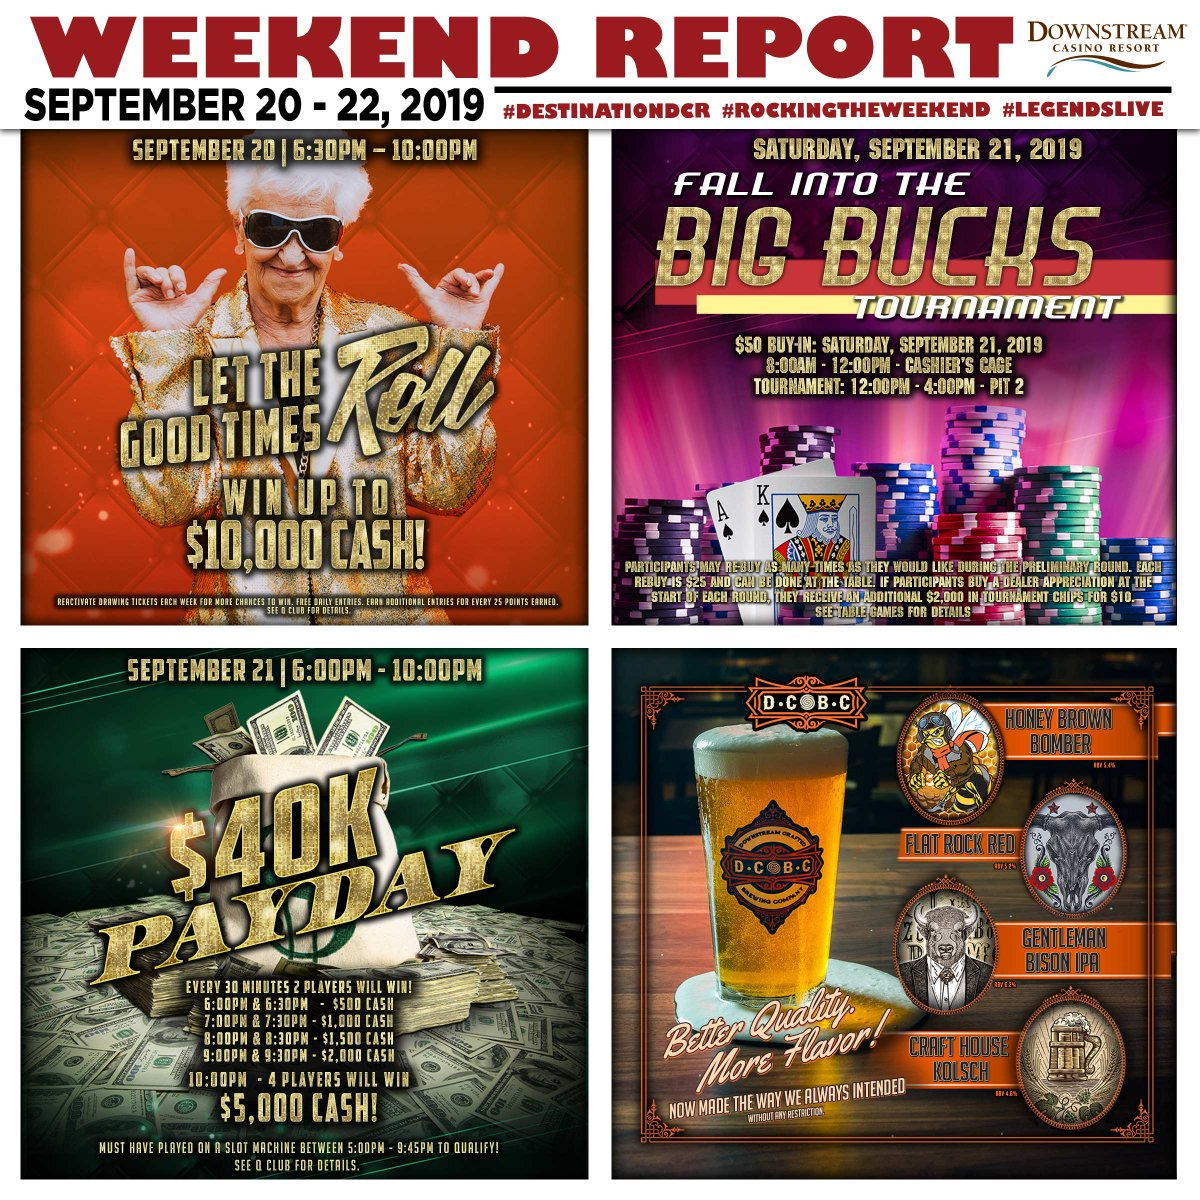 This weekend, Downstream Casino Resort is the place to be. #DCRPromotions #LegendsLive #weekendreport